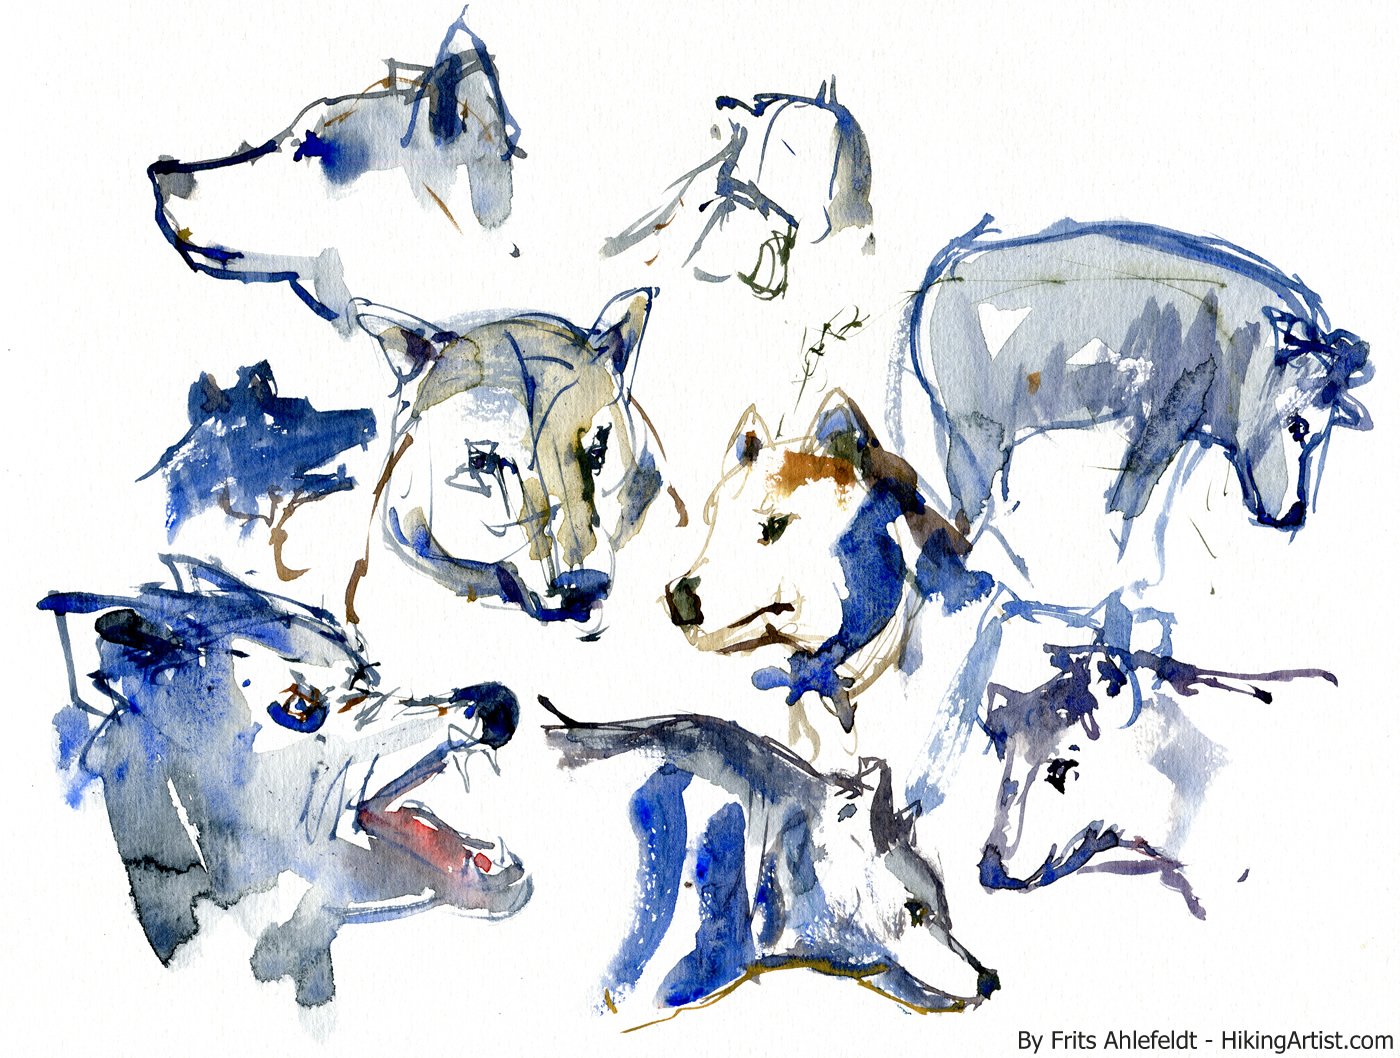 watercolor animals | The Hiking Artist project by FritsAhlefeldt.com